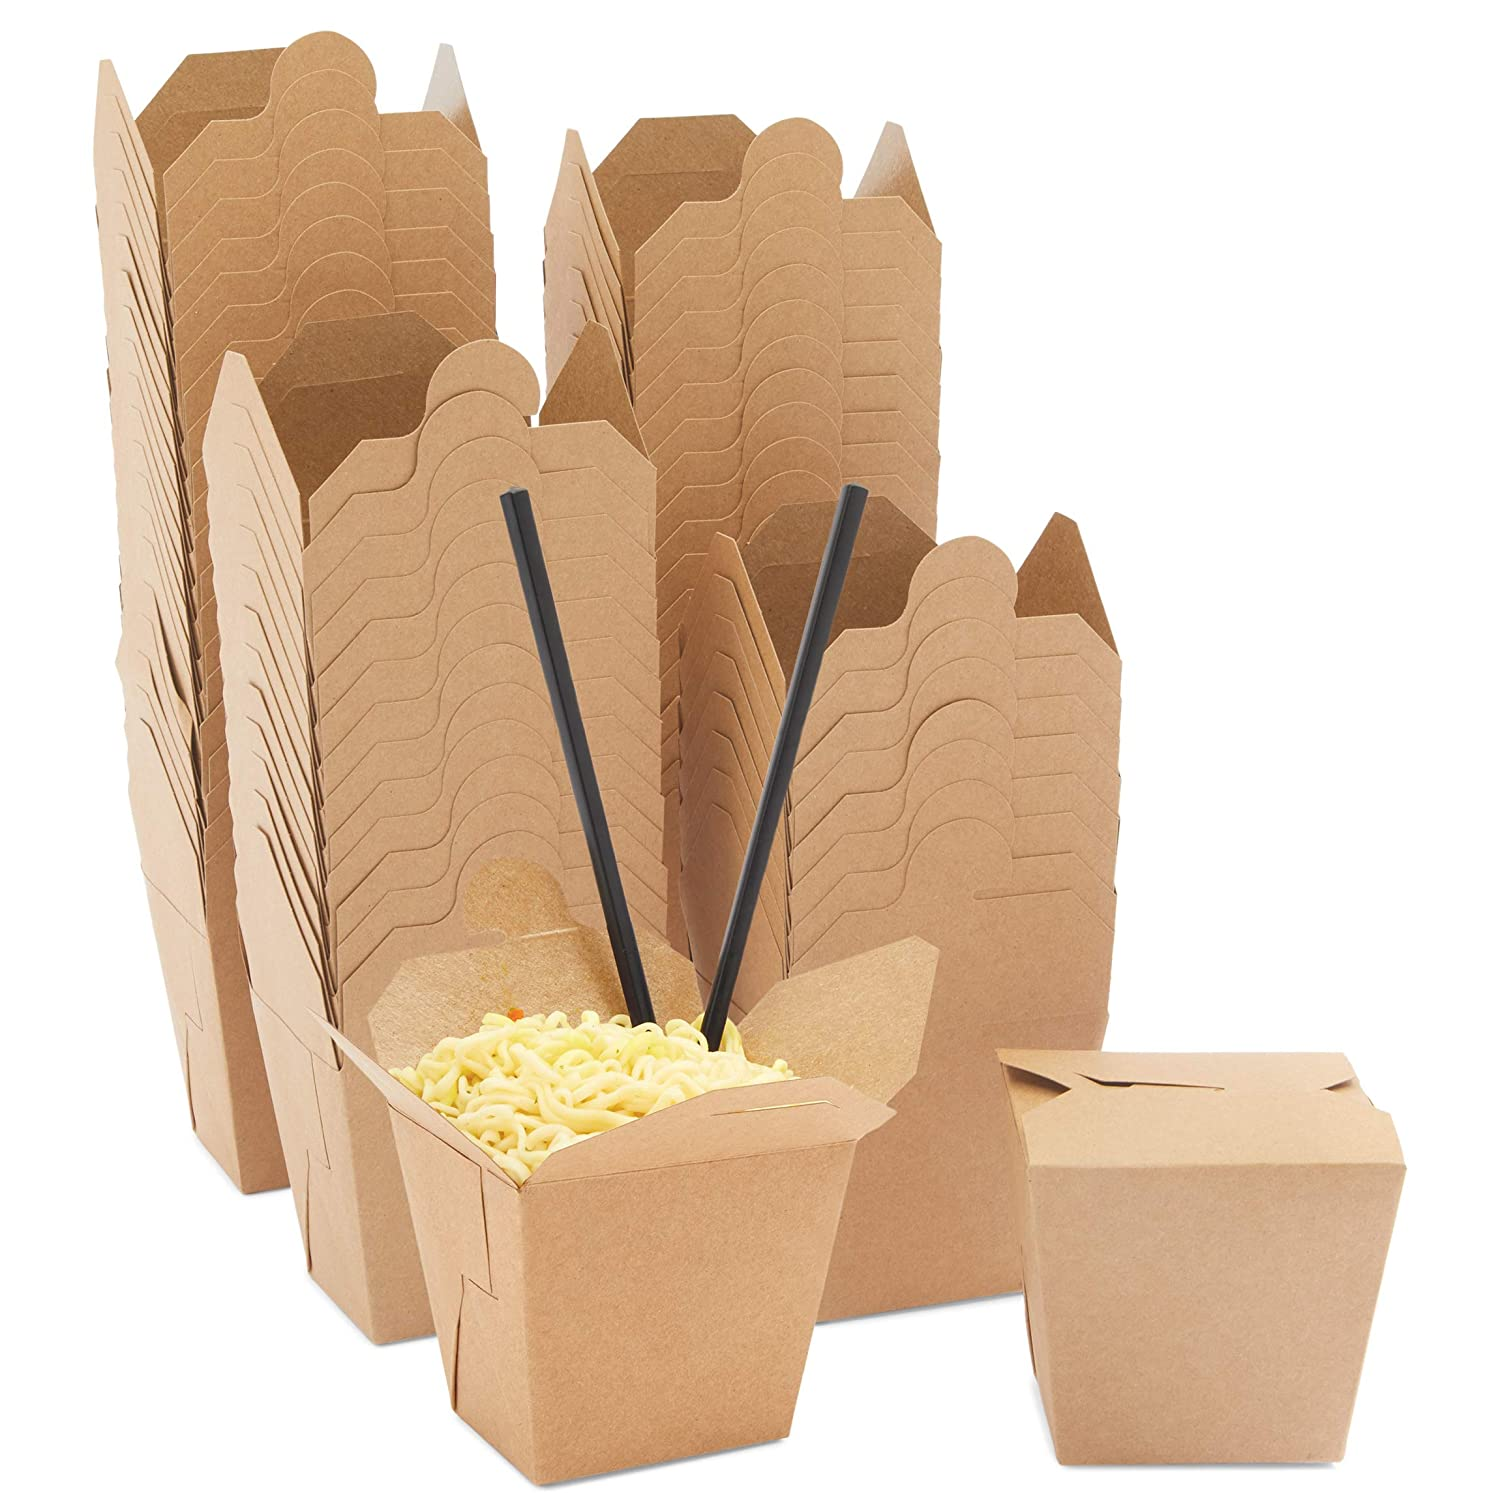 Chinese Take Out Boxes, Kraft Brown to-Go Food Containers (16 oz, 60 Pack)